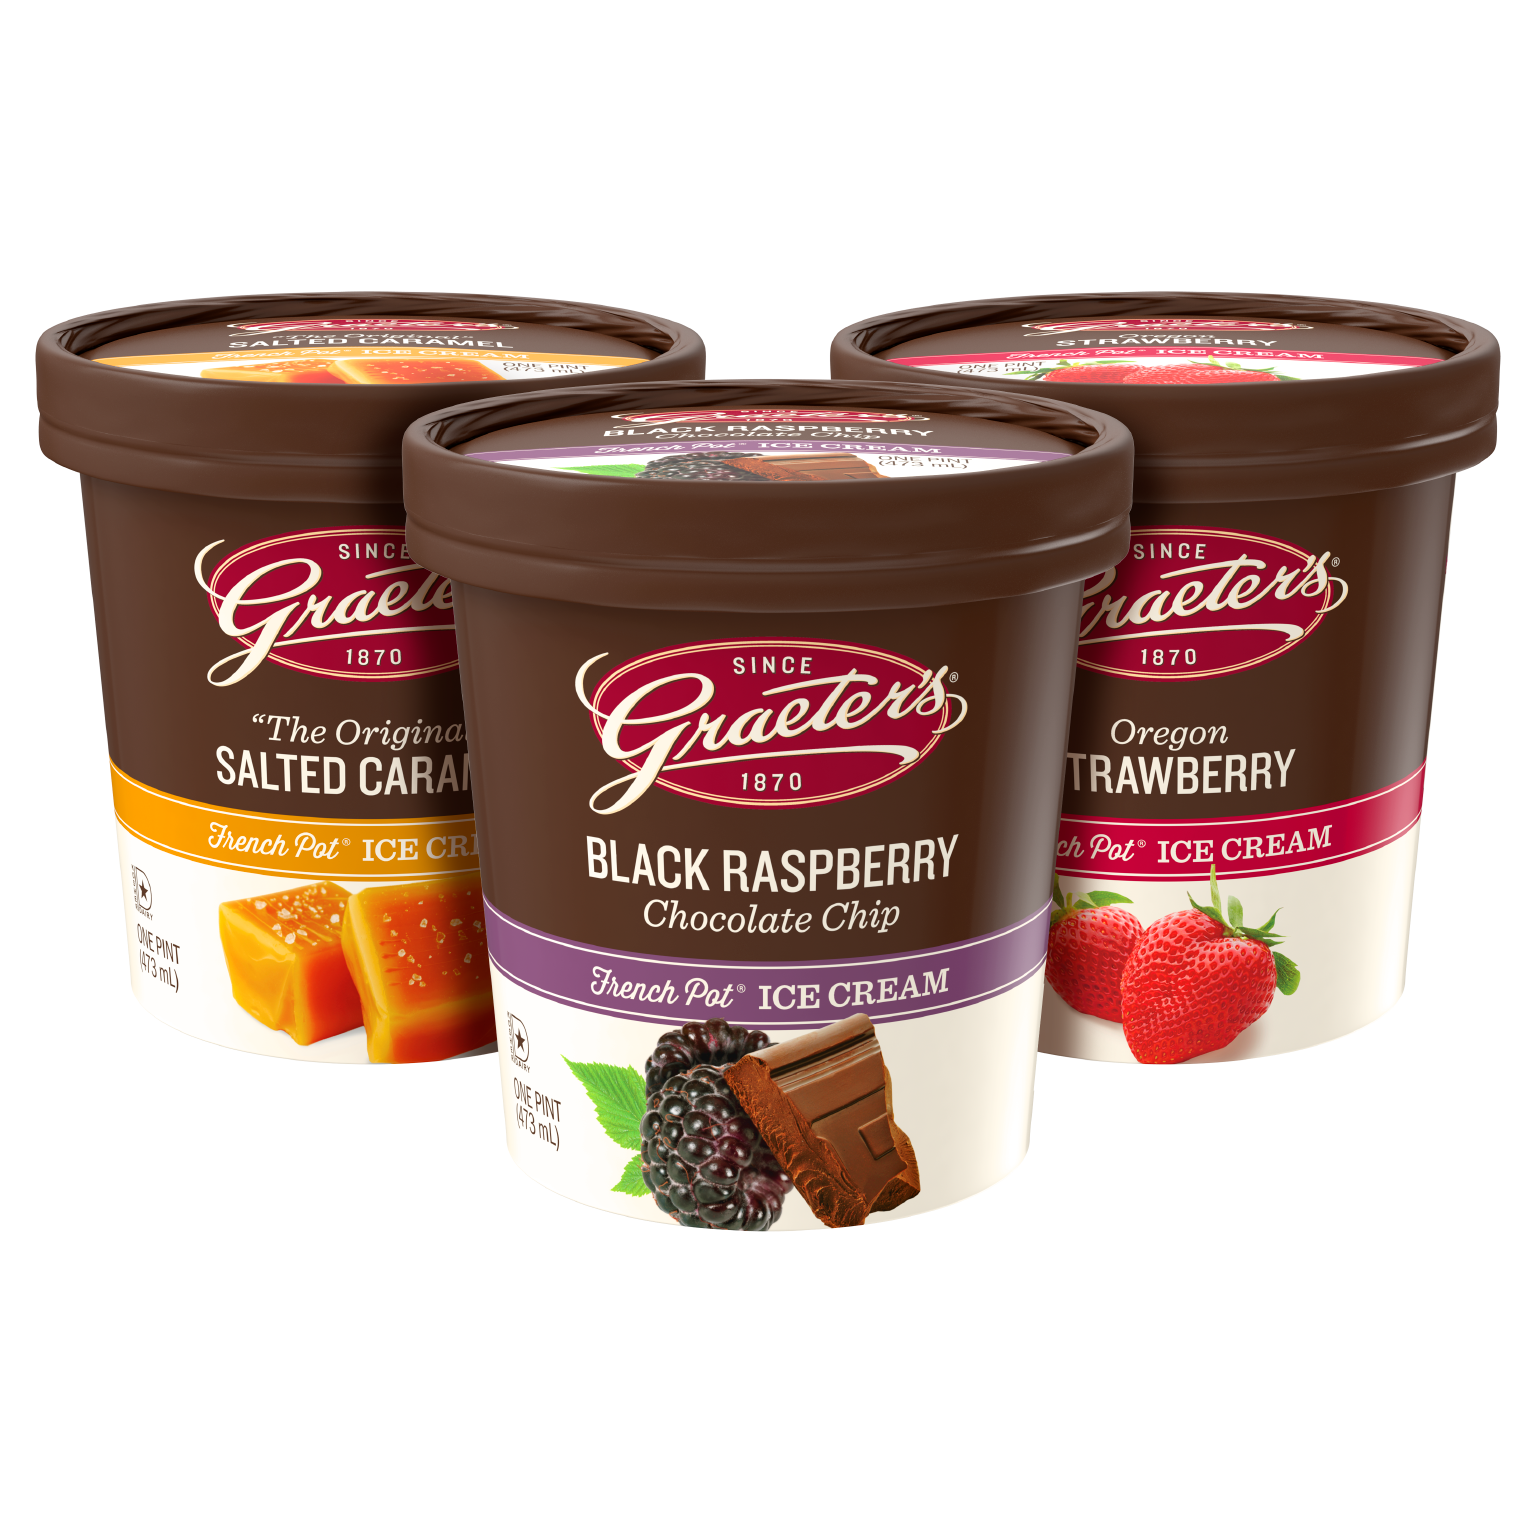 Graeter's Ice Cream Launches New Packaging to Commemorate 150th Anniversary